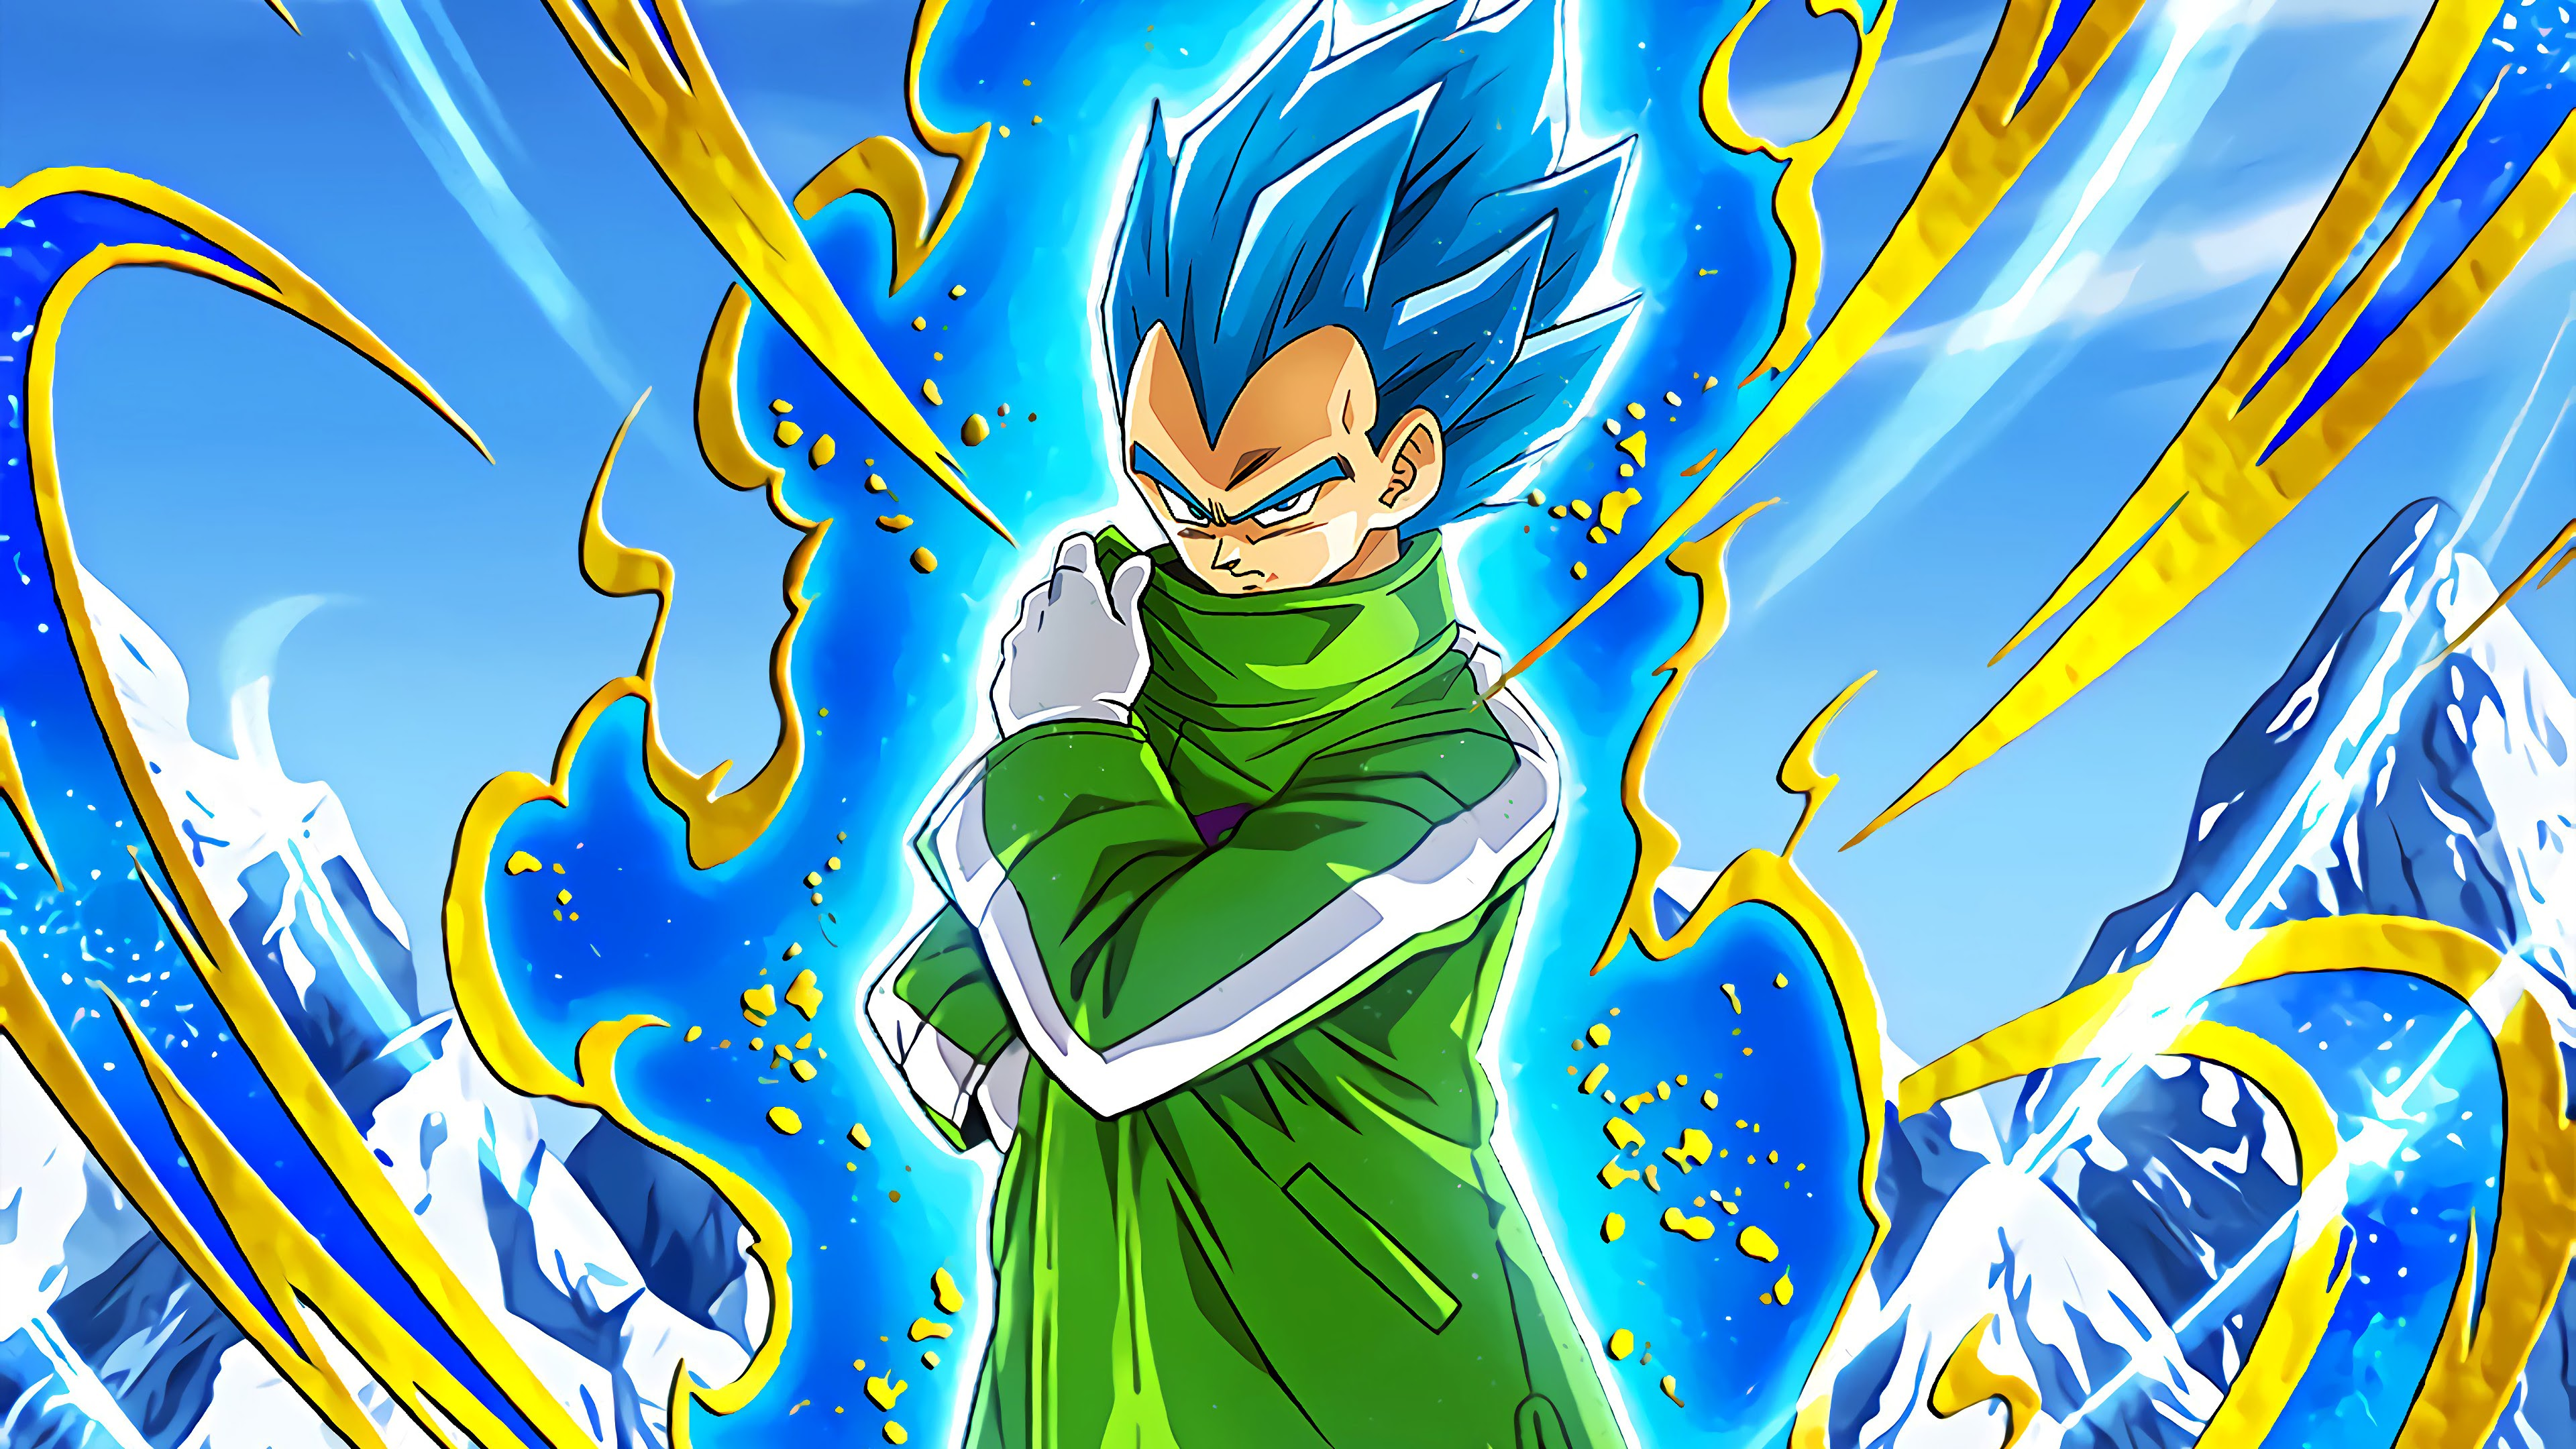 Super Saiyan Blue Vegeta Dragon Ball Super Broly 4k